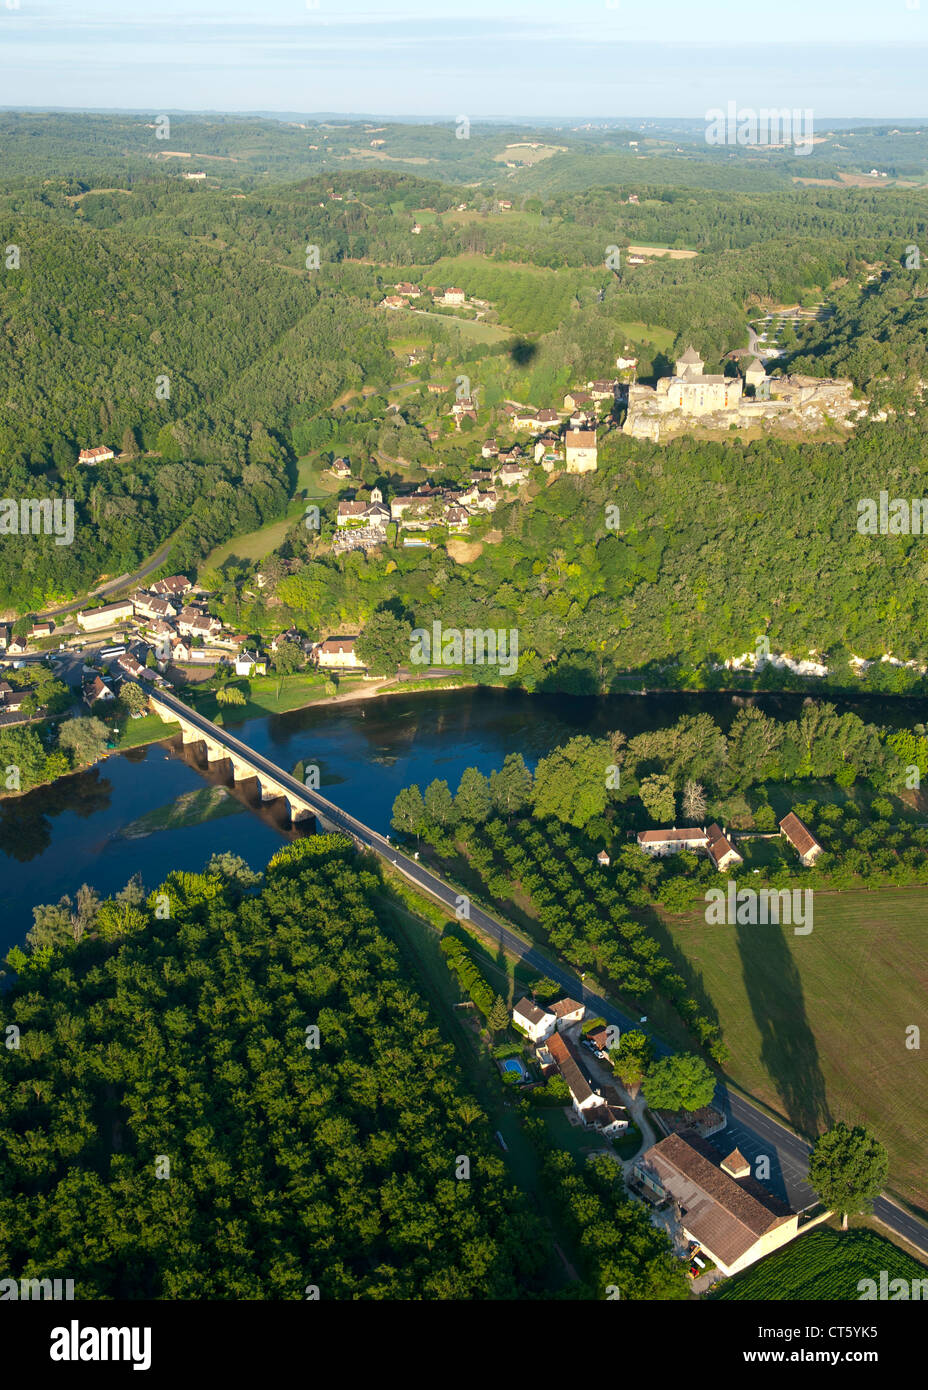 Aerial view of Castelnaud castle, the Dordogne river and surrounding countryside in the Dordogne-Perigord region - Stock Image